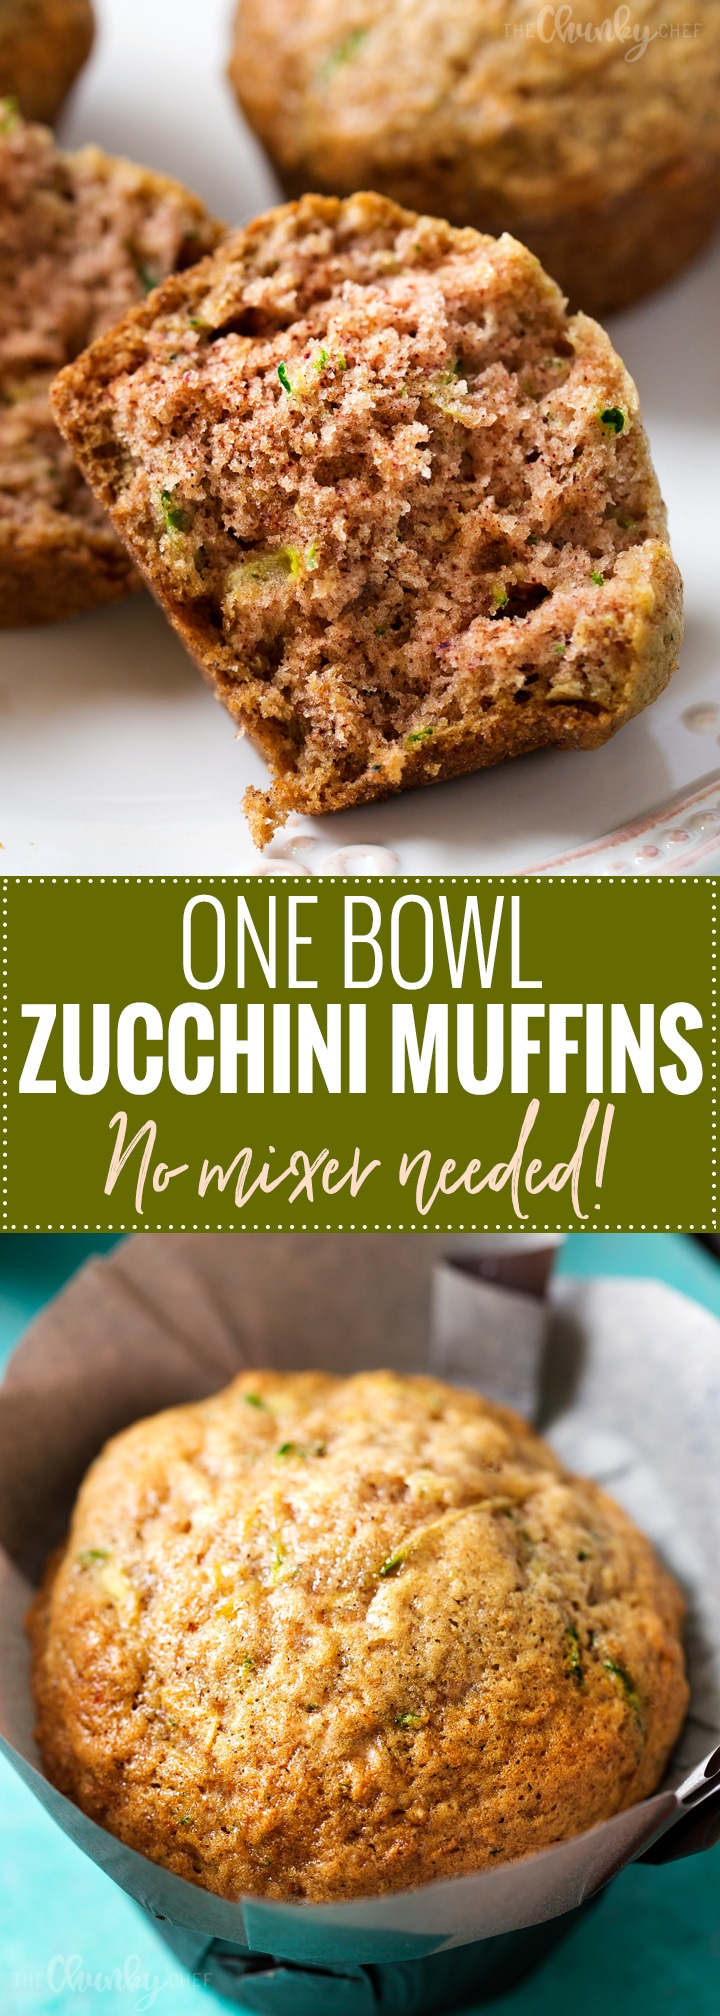 One Bowl Zucchini Muffins | One bowl, no mixer needed, and everyday ingredients... the perfect zucchini muffins! These muffins are perfect for breakfast, a snack, or getting kids to eat extra veggies! | http://thechunkychef.com